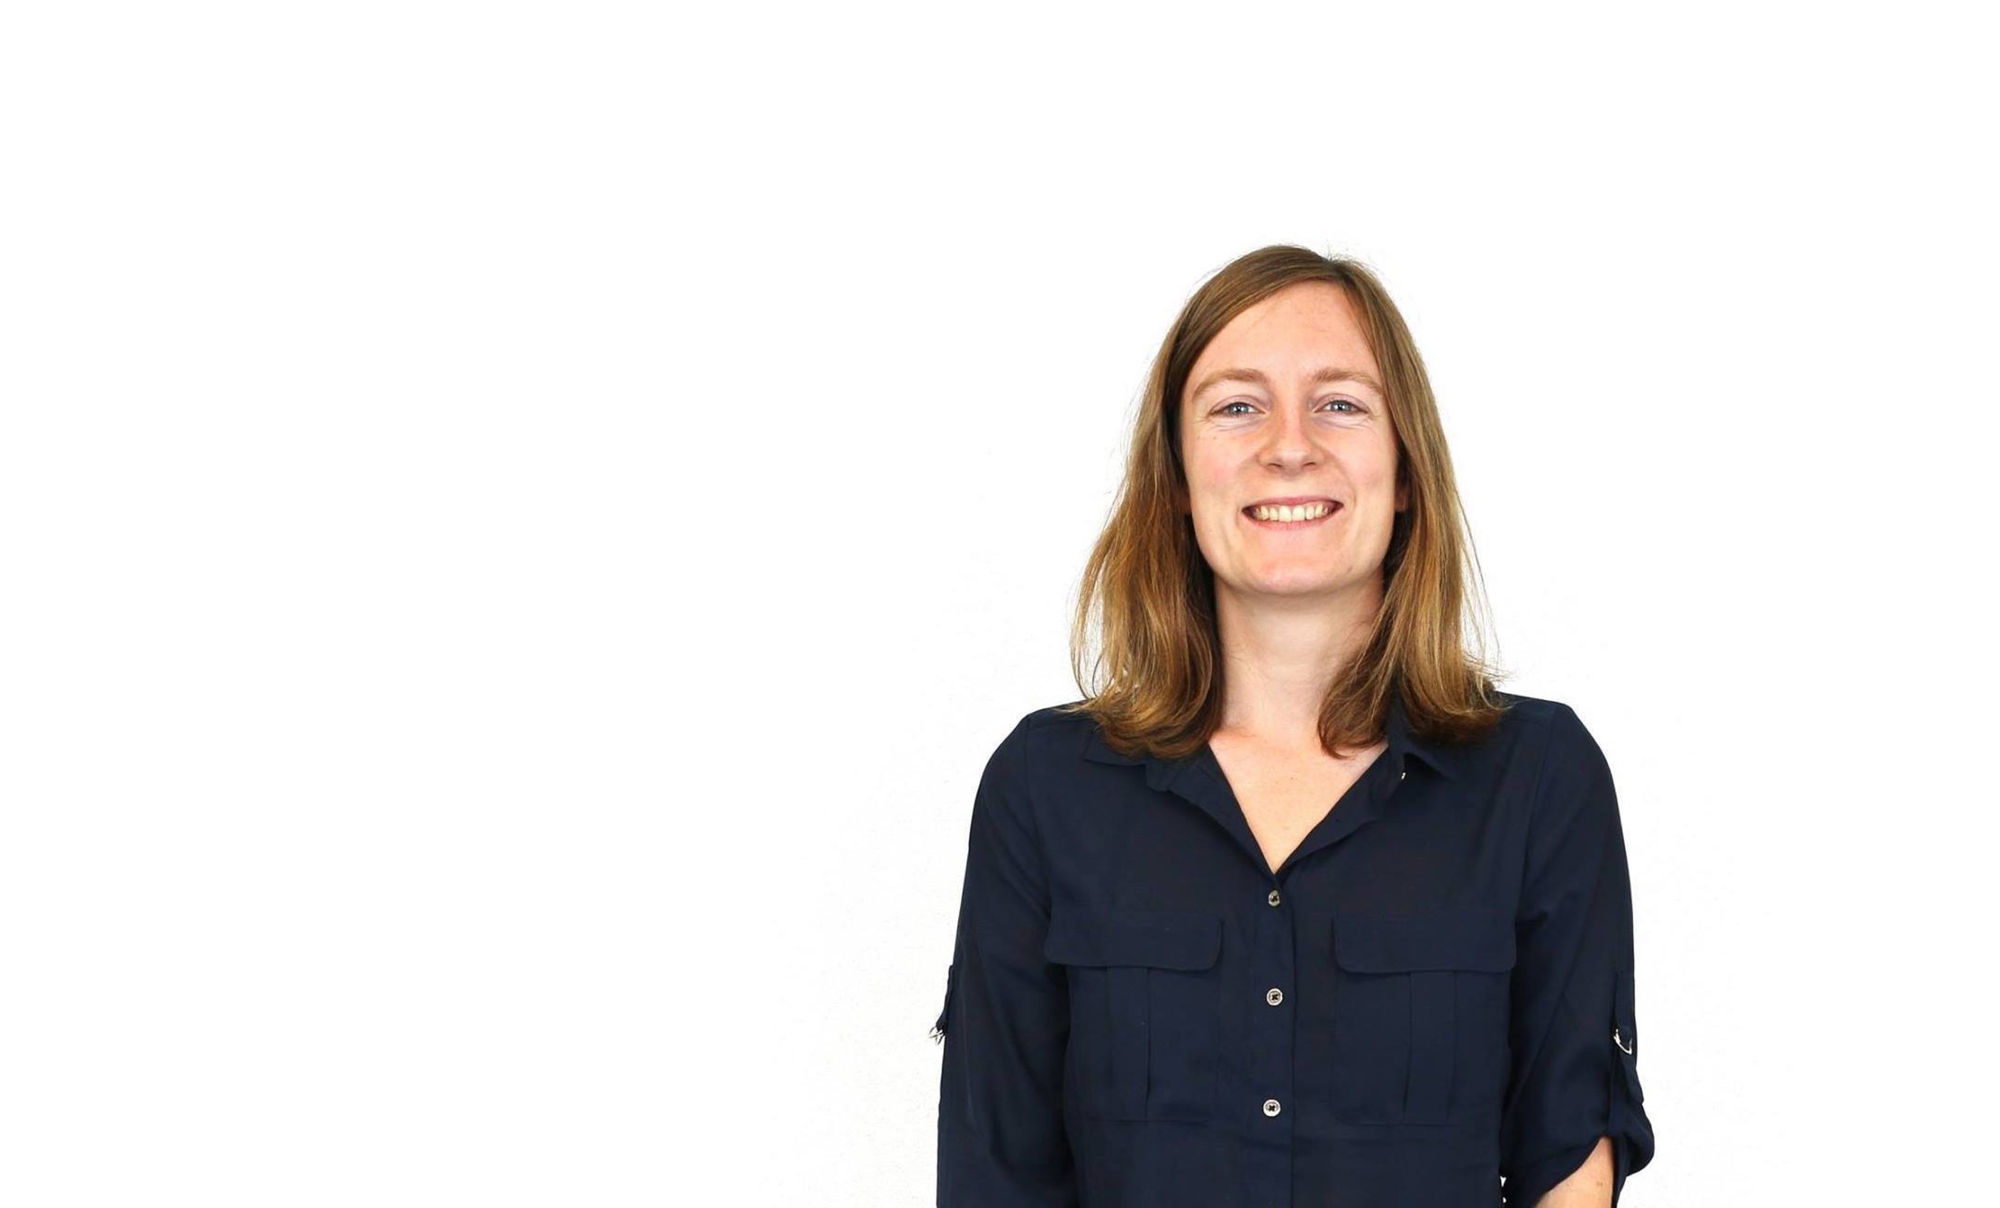 [Girls in a Tech World] Meet Ségolène, Product Manager